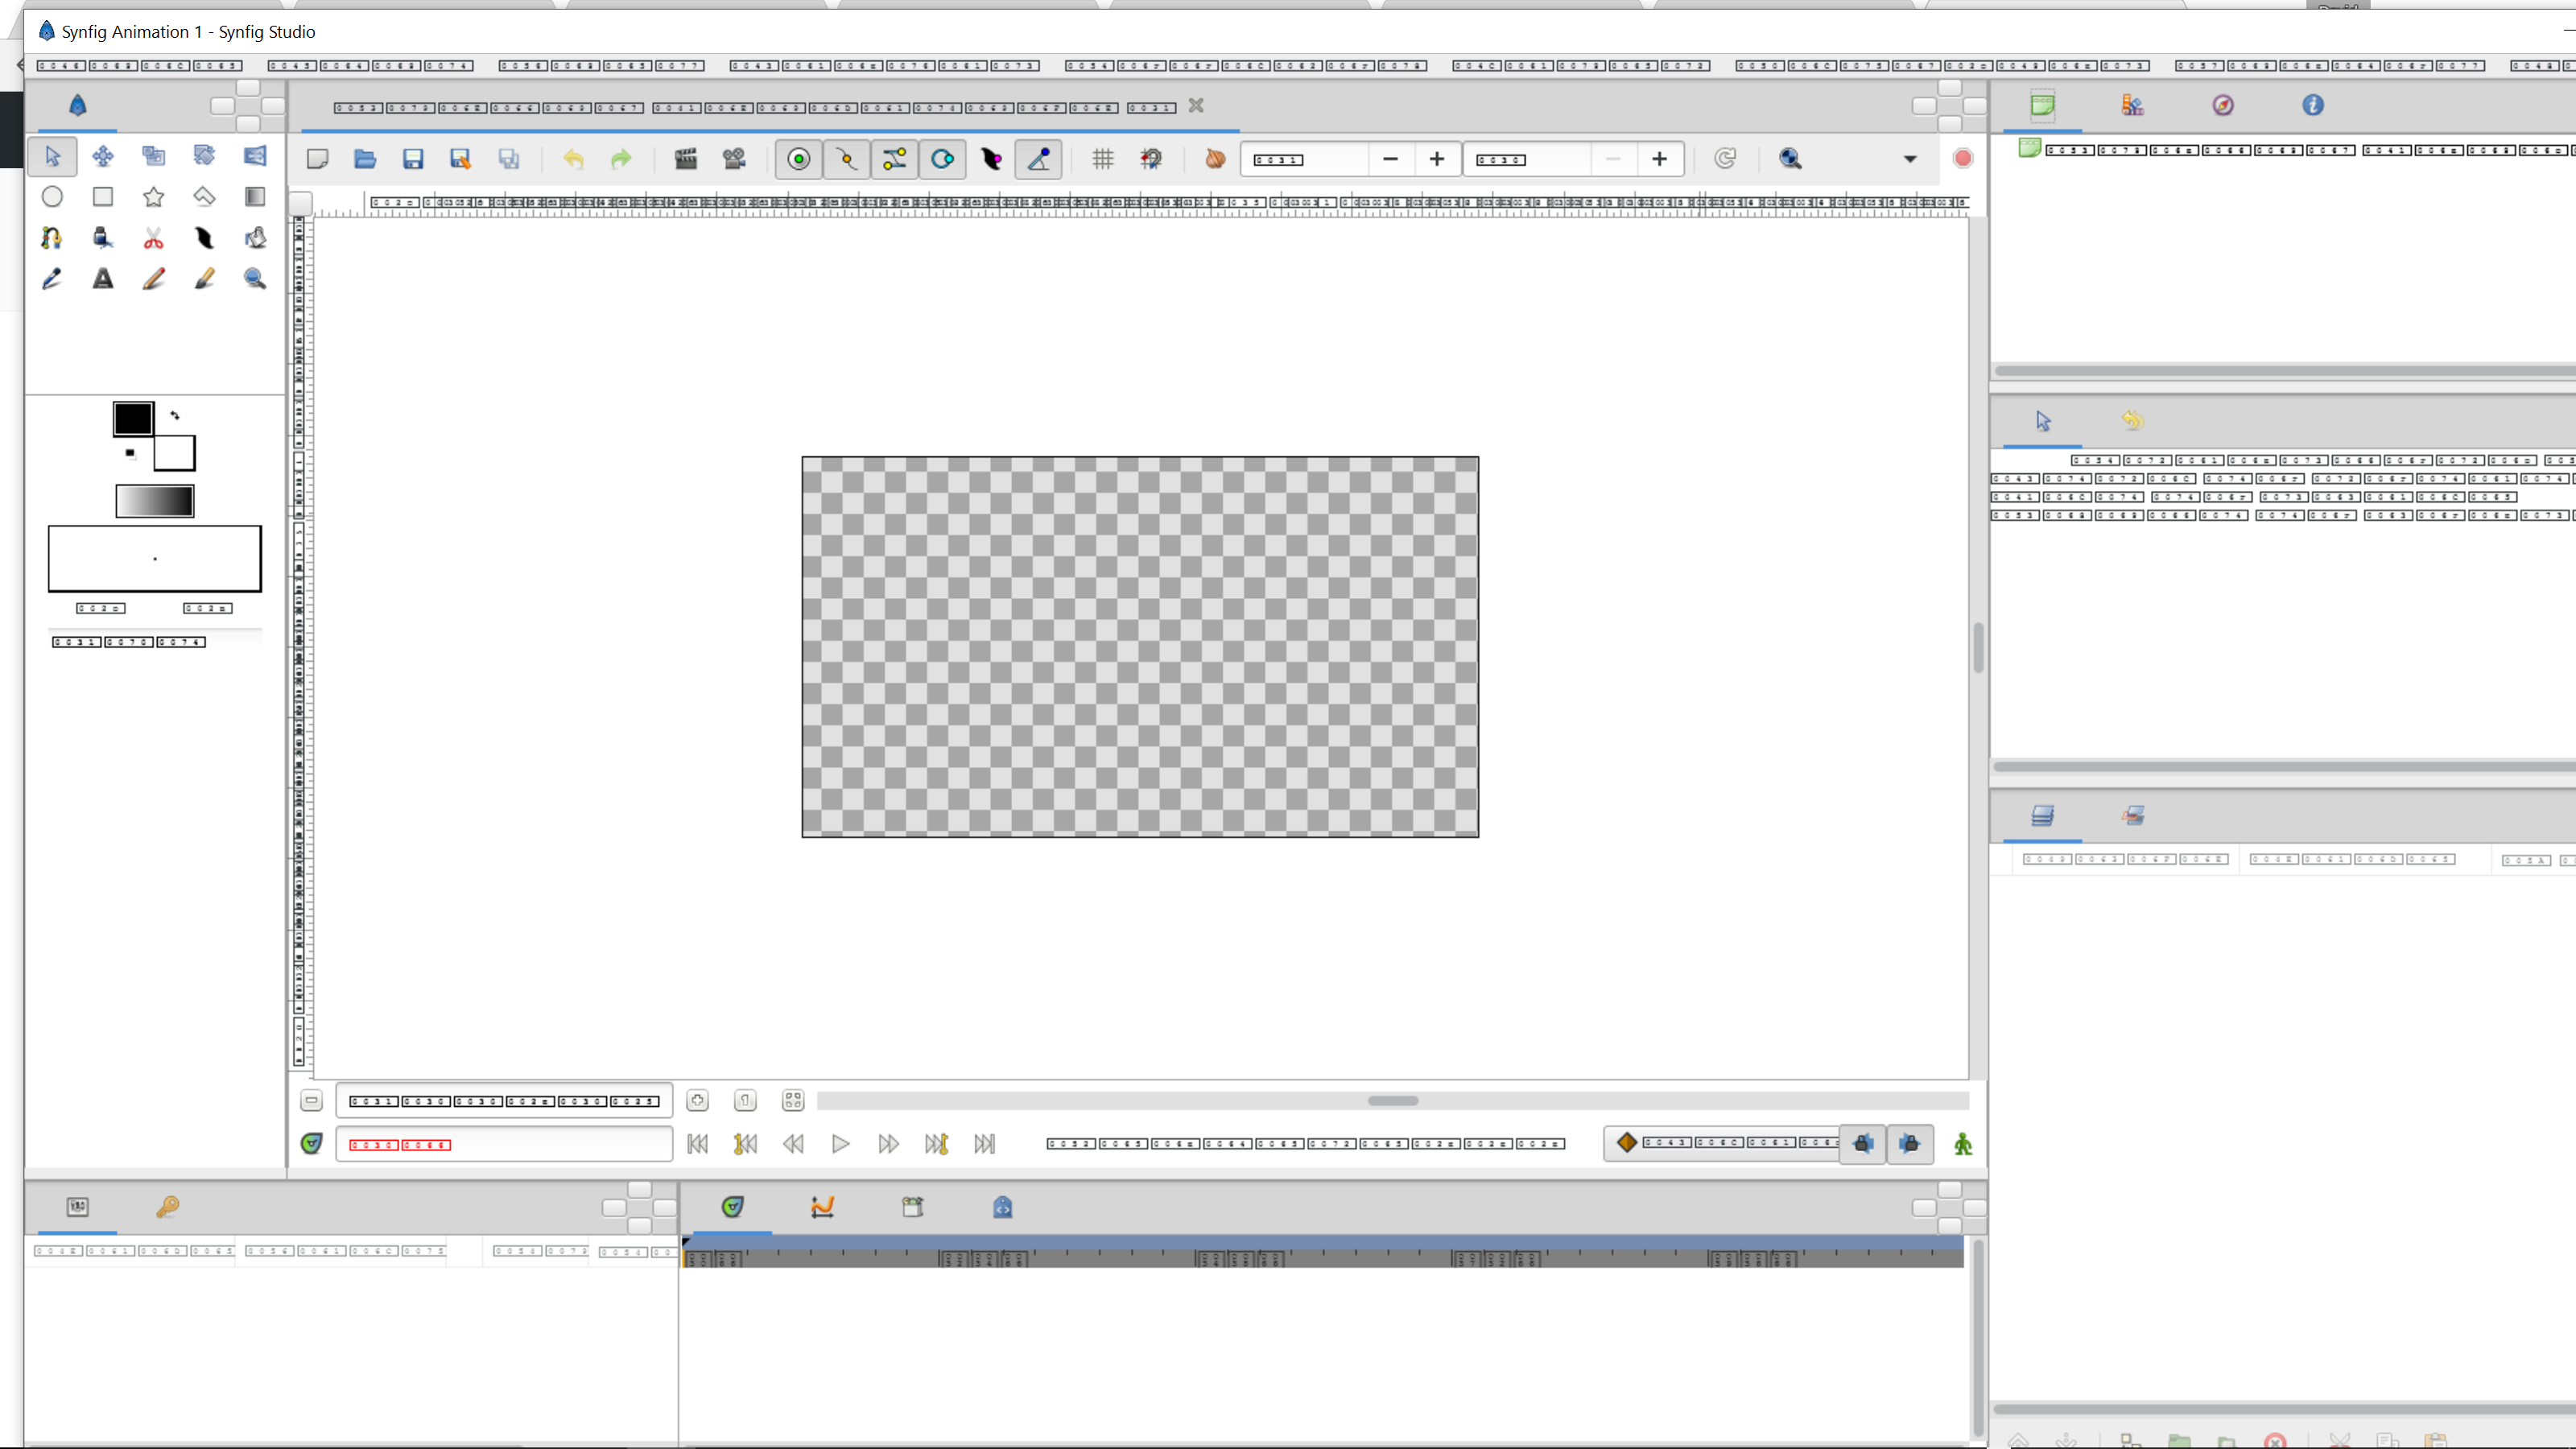 synfig - font issue